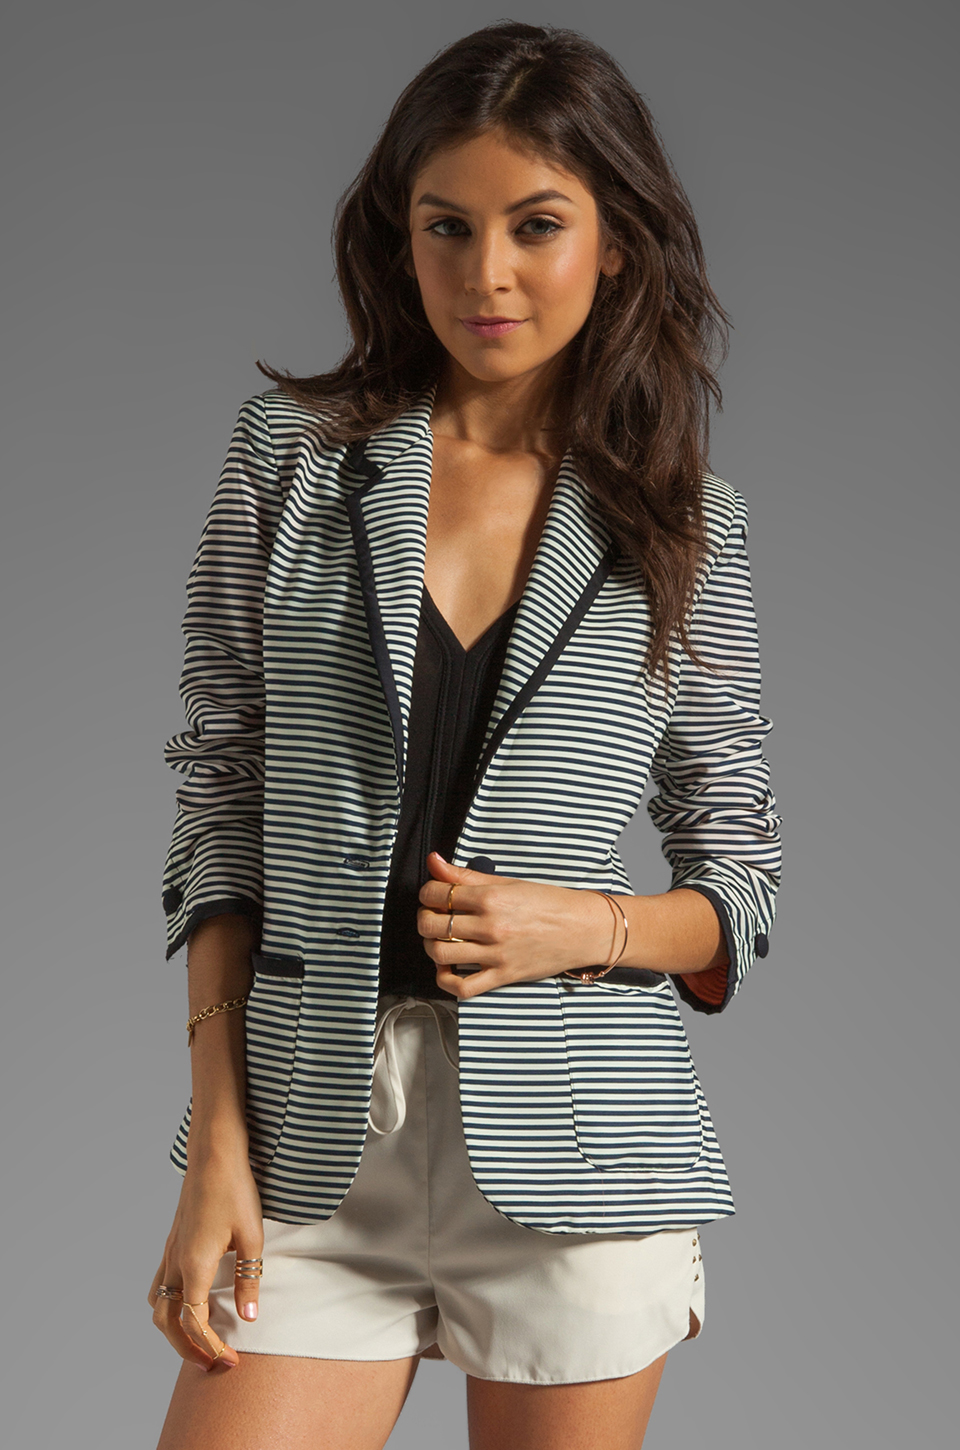 Lovers + Friends x BECAUSE IM ADDICTED Addicted to Love Blazer in Stripe